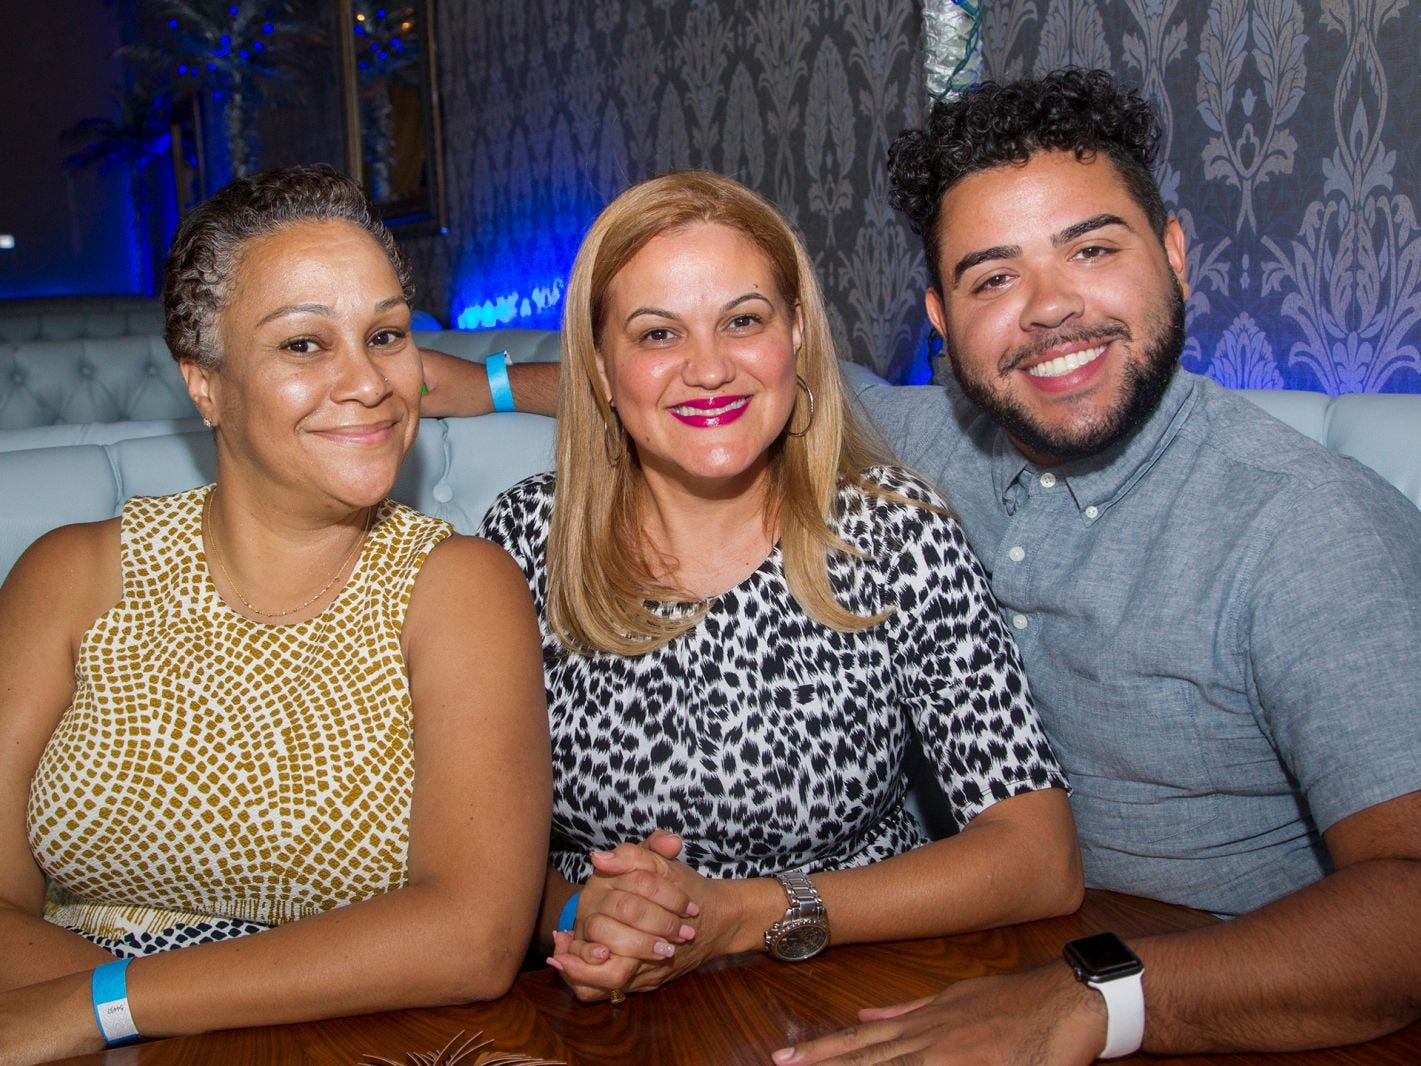 Aviva Woog, Damaris Camilo, Joel Martinez. Summer Samba Night benefitting Tackle Kids Cancer hosted by Cara Robles, Luis Robles (NY Red Bulls Goalkeeper), Jennifer Farber, and Dr. Michael Farber at Son Cubano in West New York. 08/08/2018